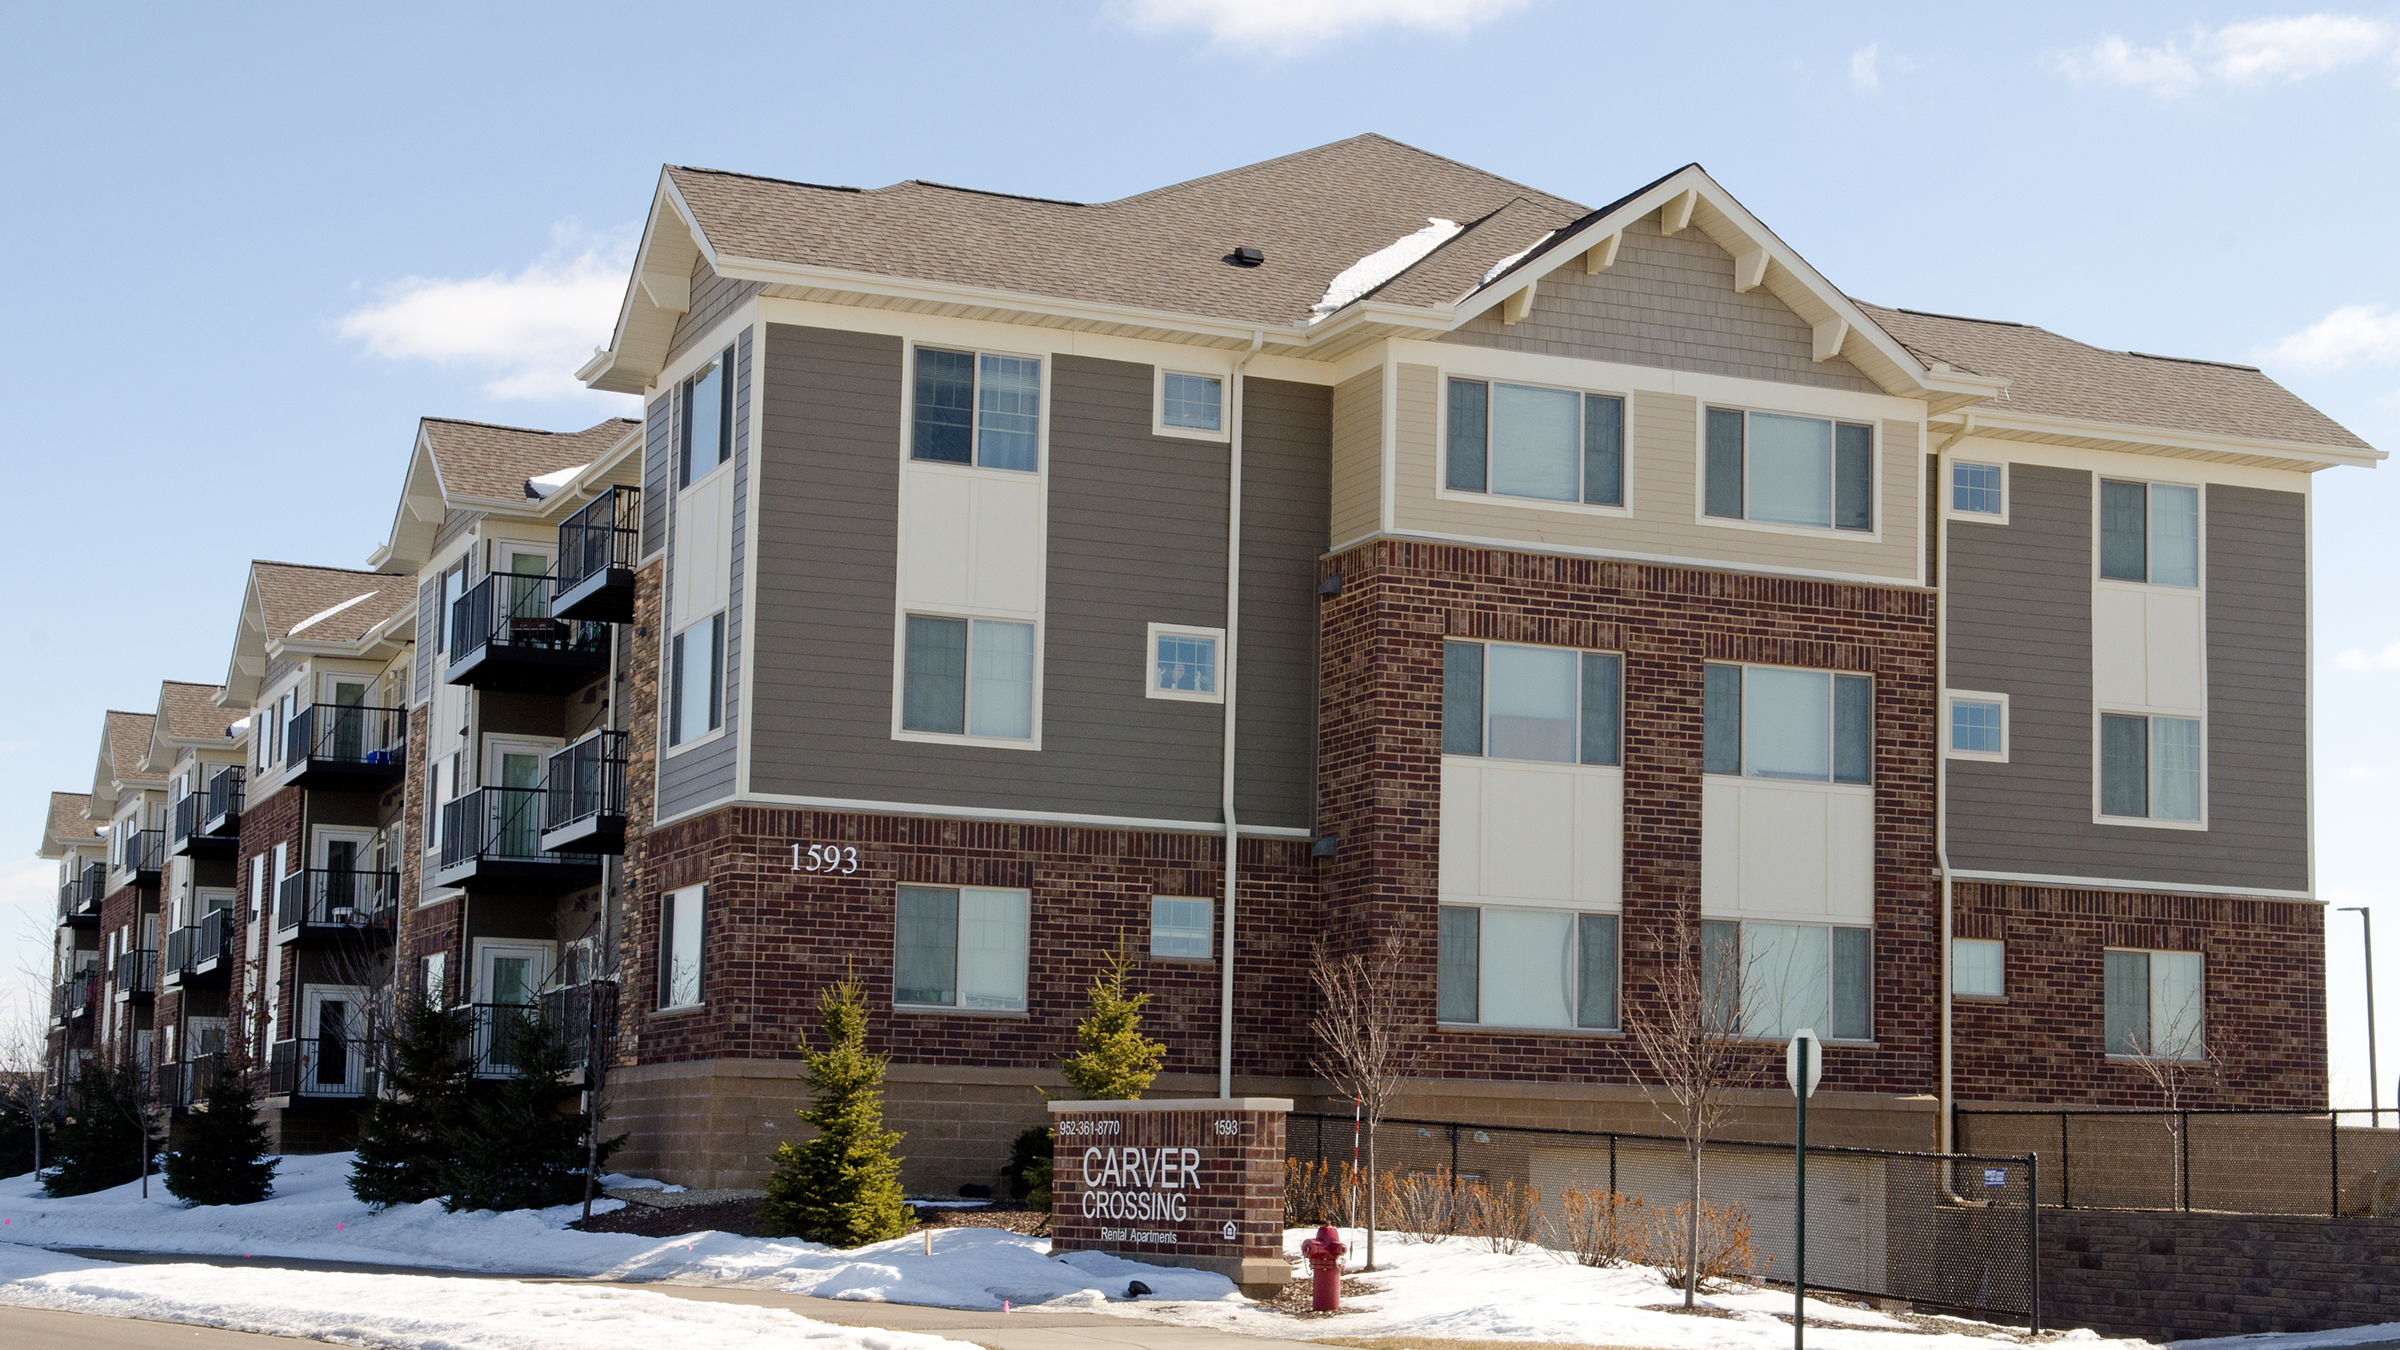 Once opposed by many neighbors, the Carver Crossing apartment complex in Carver, Minn., has become an accepted part of the community.